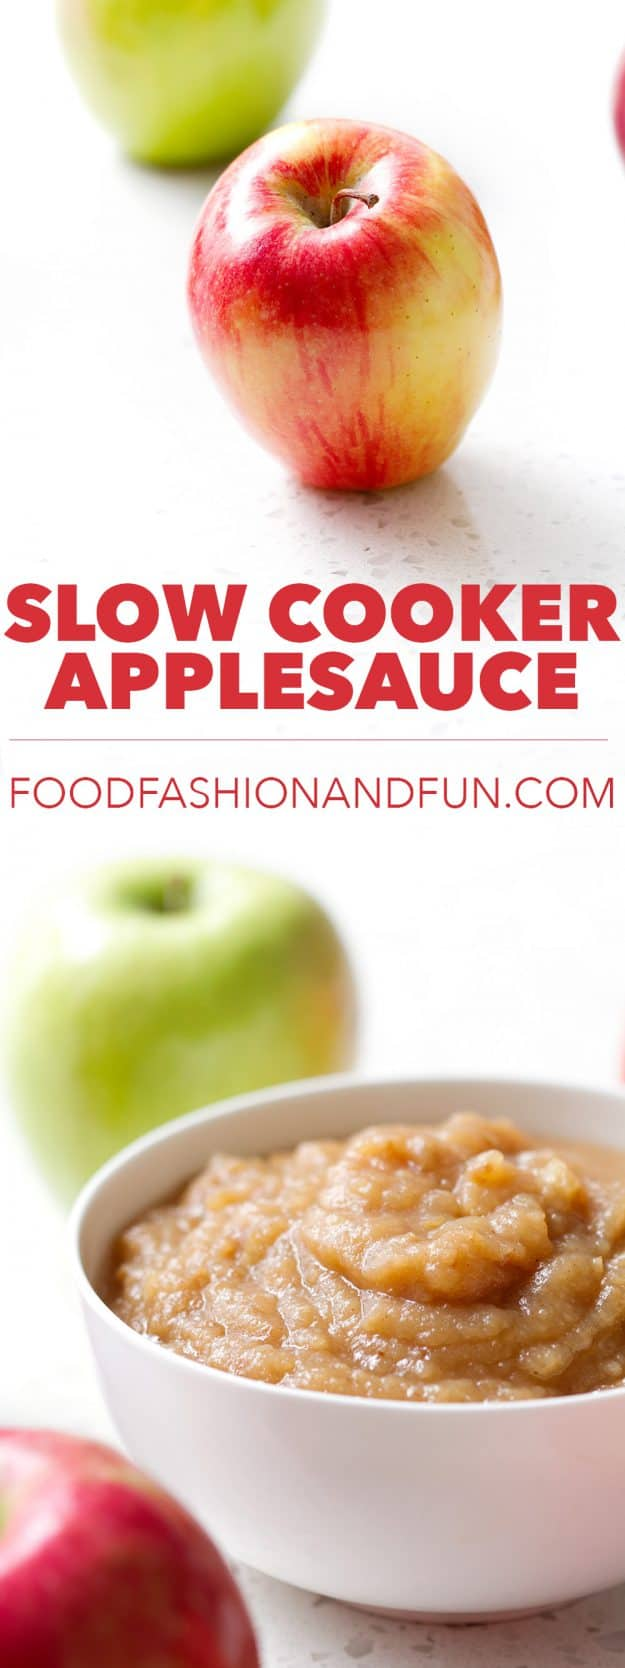 Slow Cooker Applesauce recipe that is so easy you don't even need to peel it. All you need is a slow cooker!